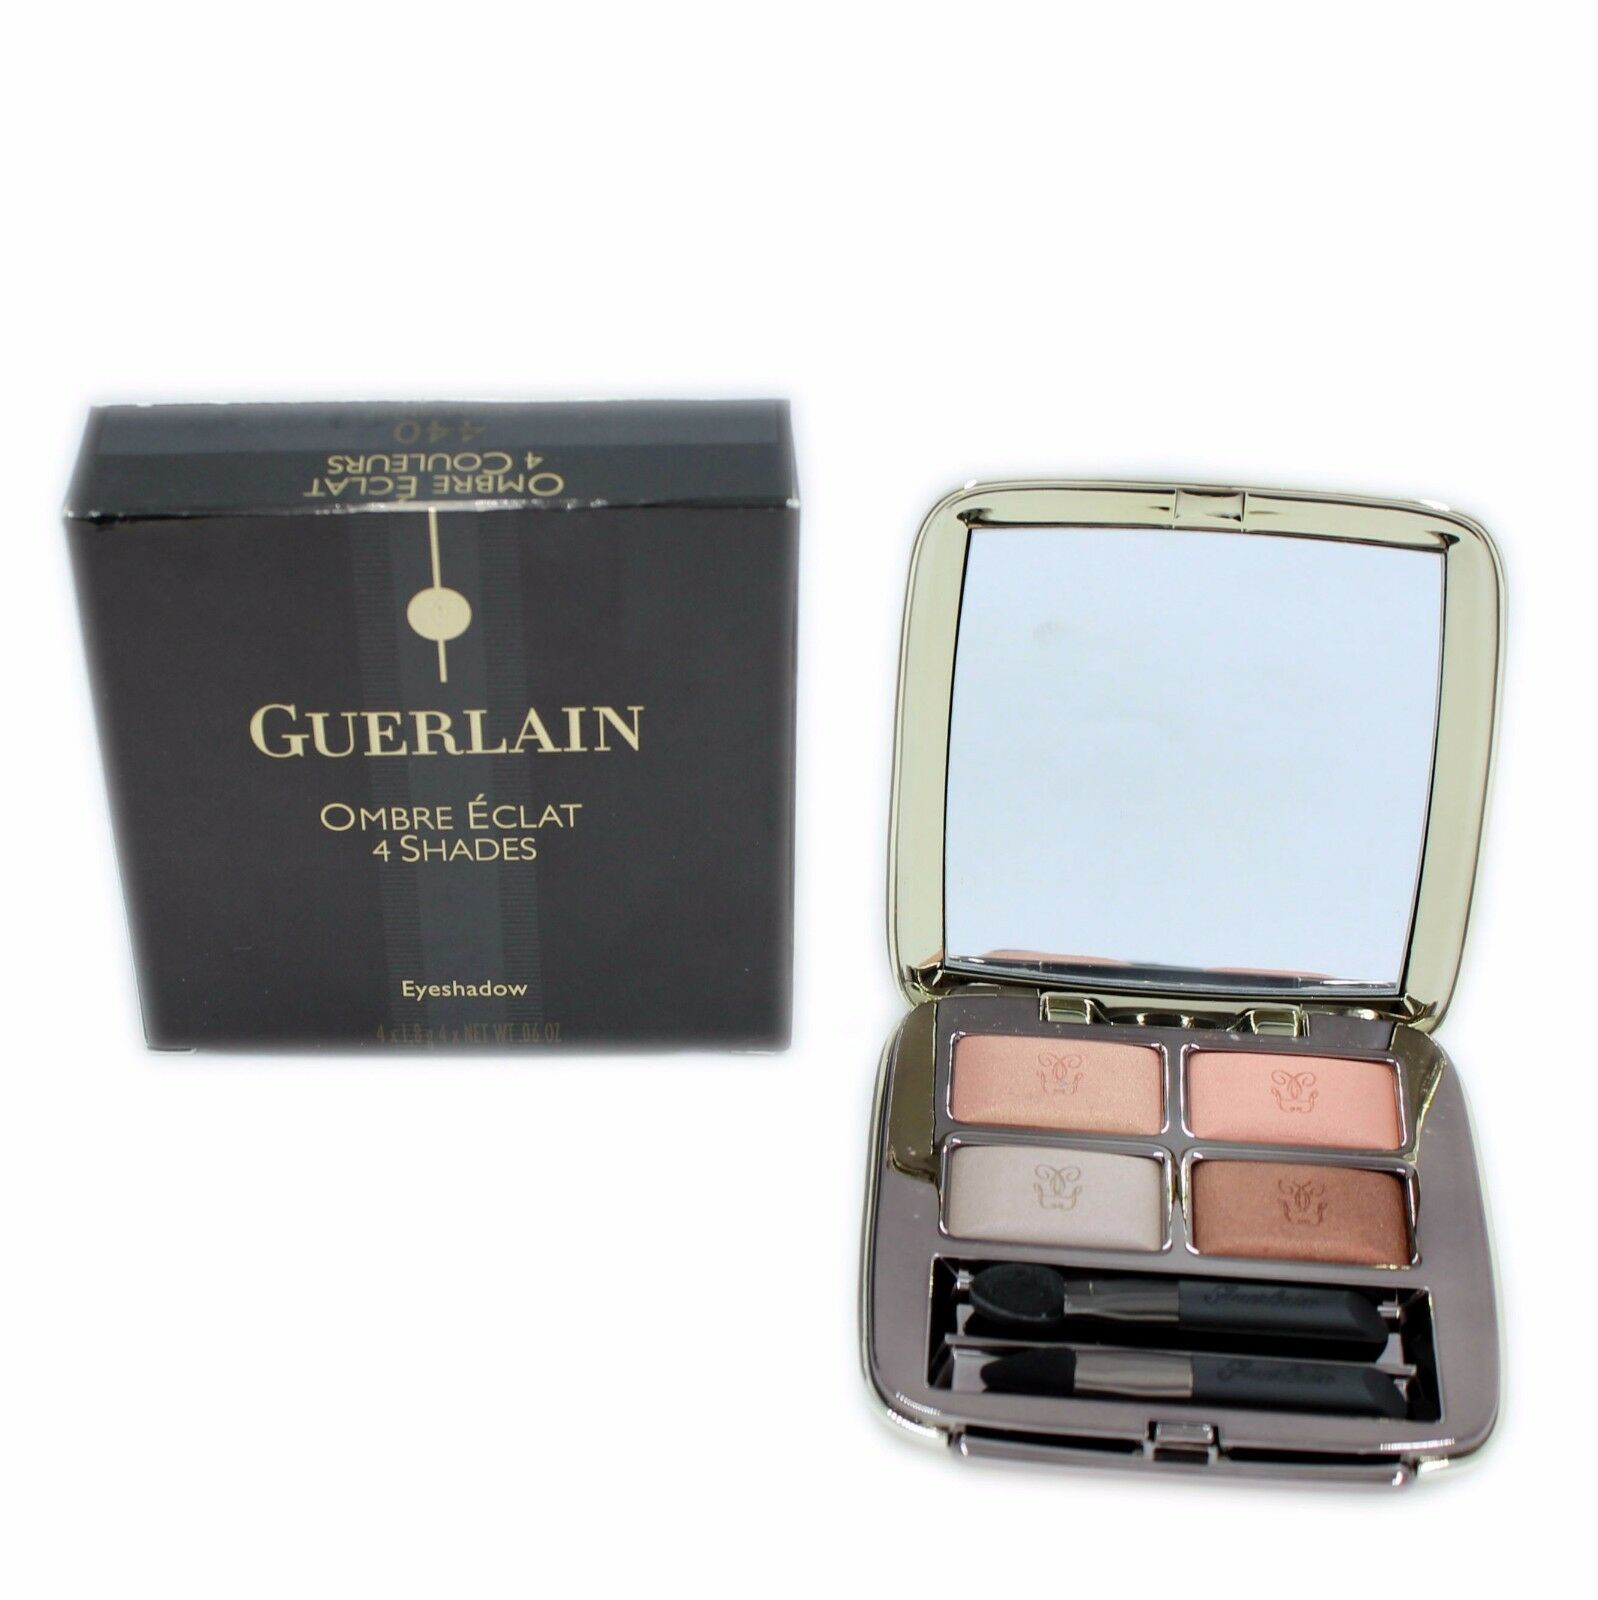 Primary image for GUERLAIN OMBRE ECLAT 4 SHADES EYESHADOW 4X1.8G #440-CORAIL AMBRE NIB-G40607